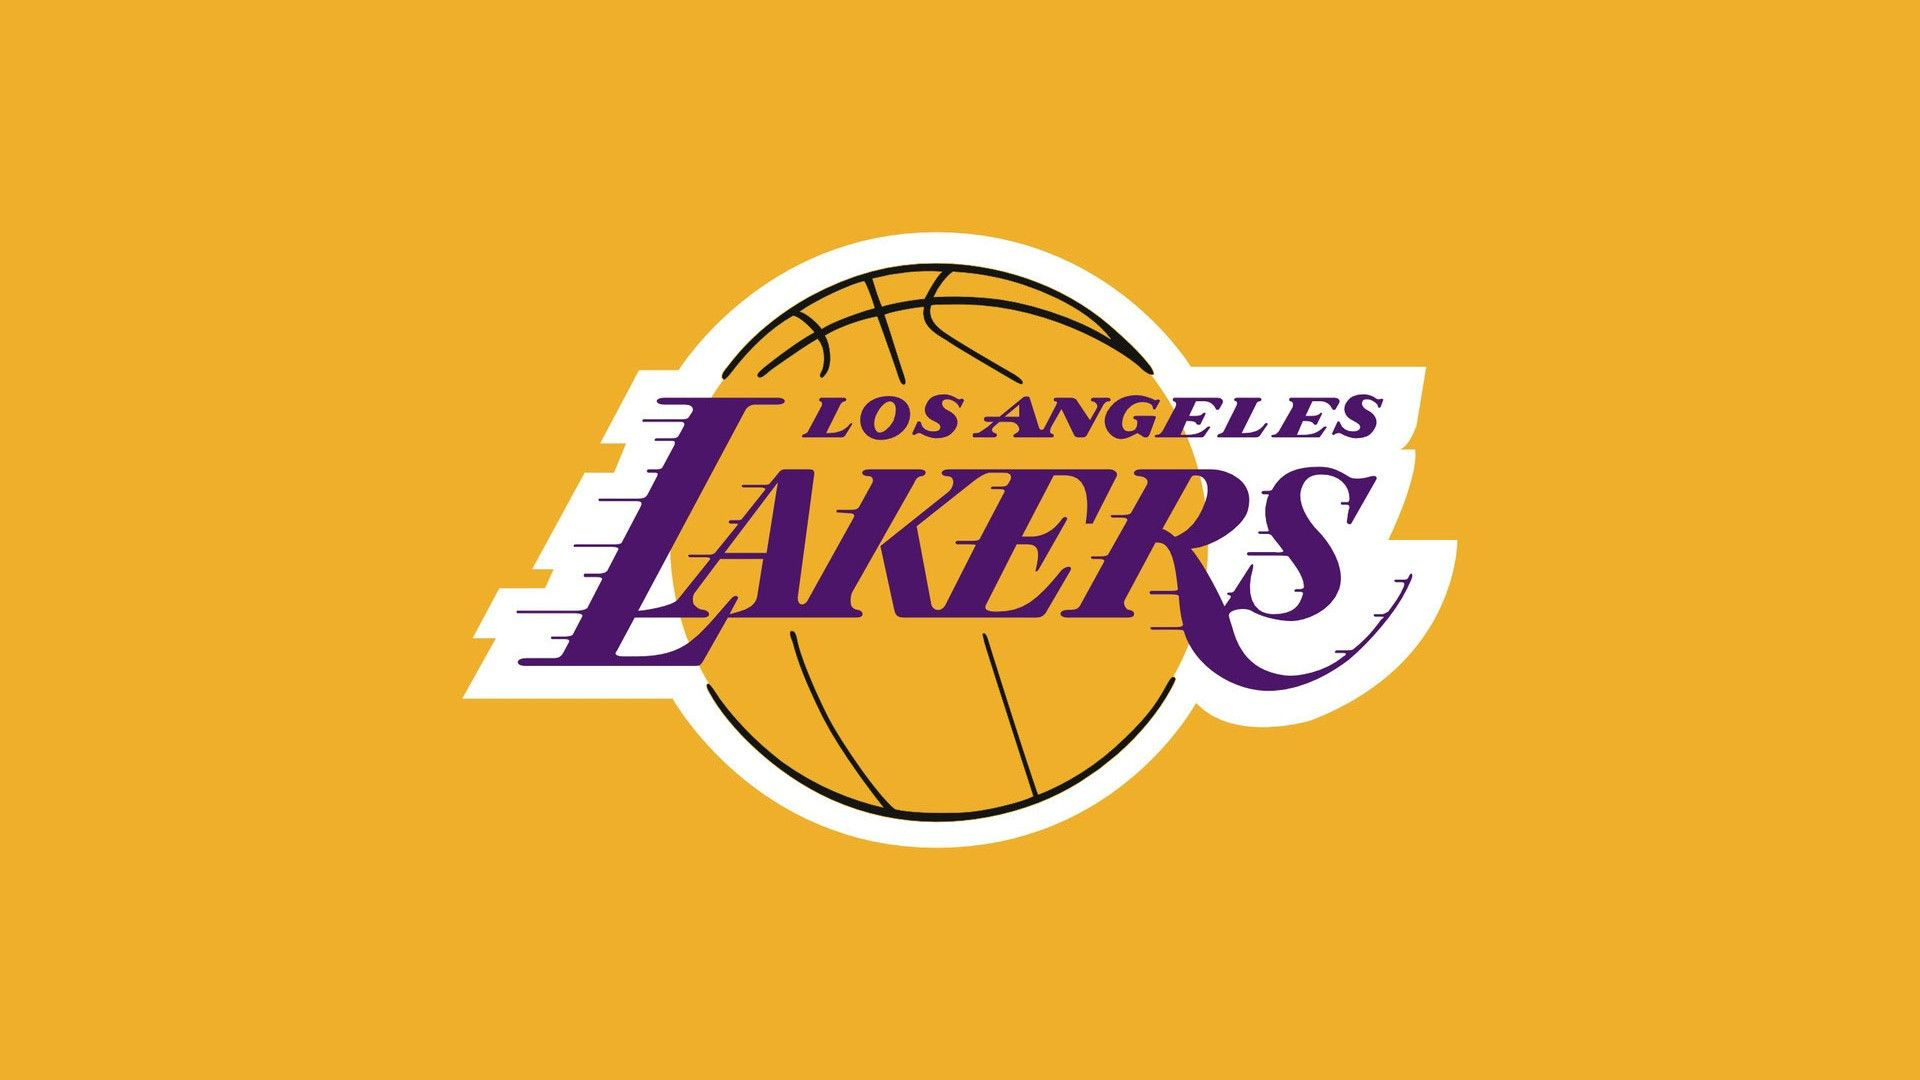 Backgrounds Los Angeles Lakers Hd Los Angeles Lakers Logo Lakers Logo Los Angeles Lakers